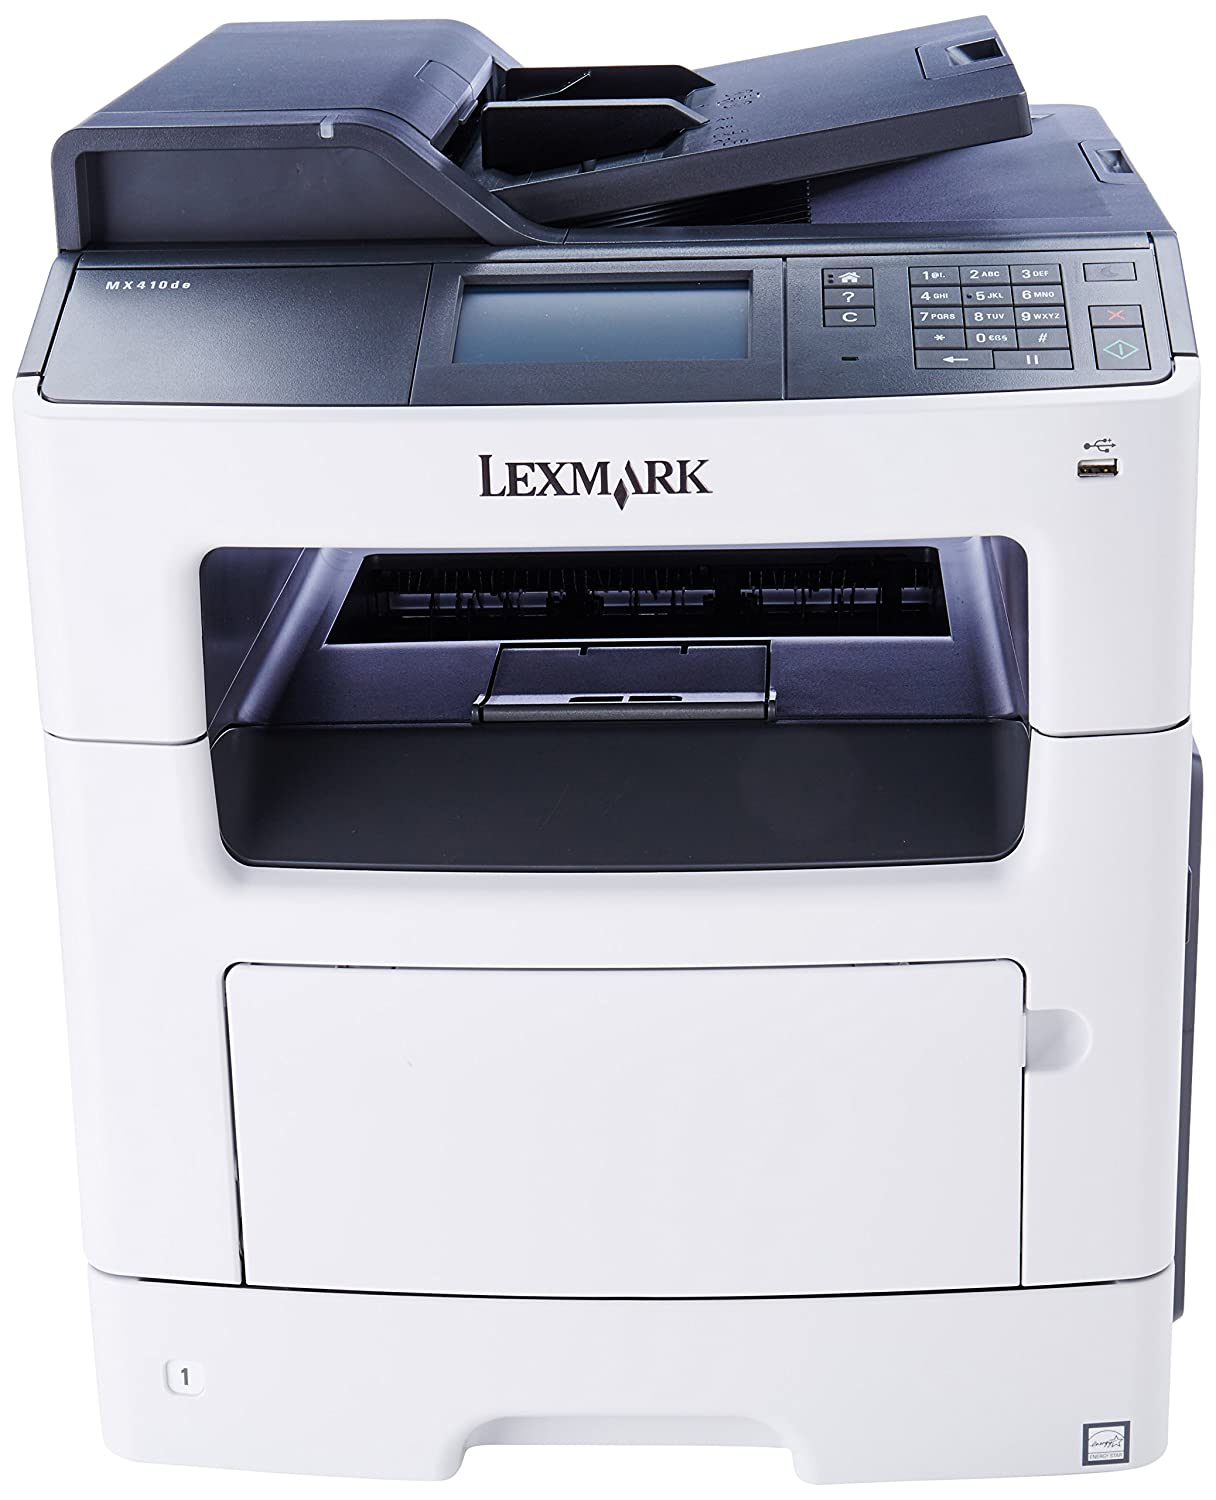 Lexmark MS810 MFP XPS v4 Drivers Windows 7